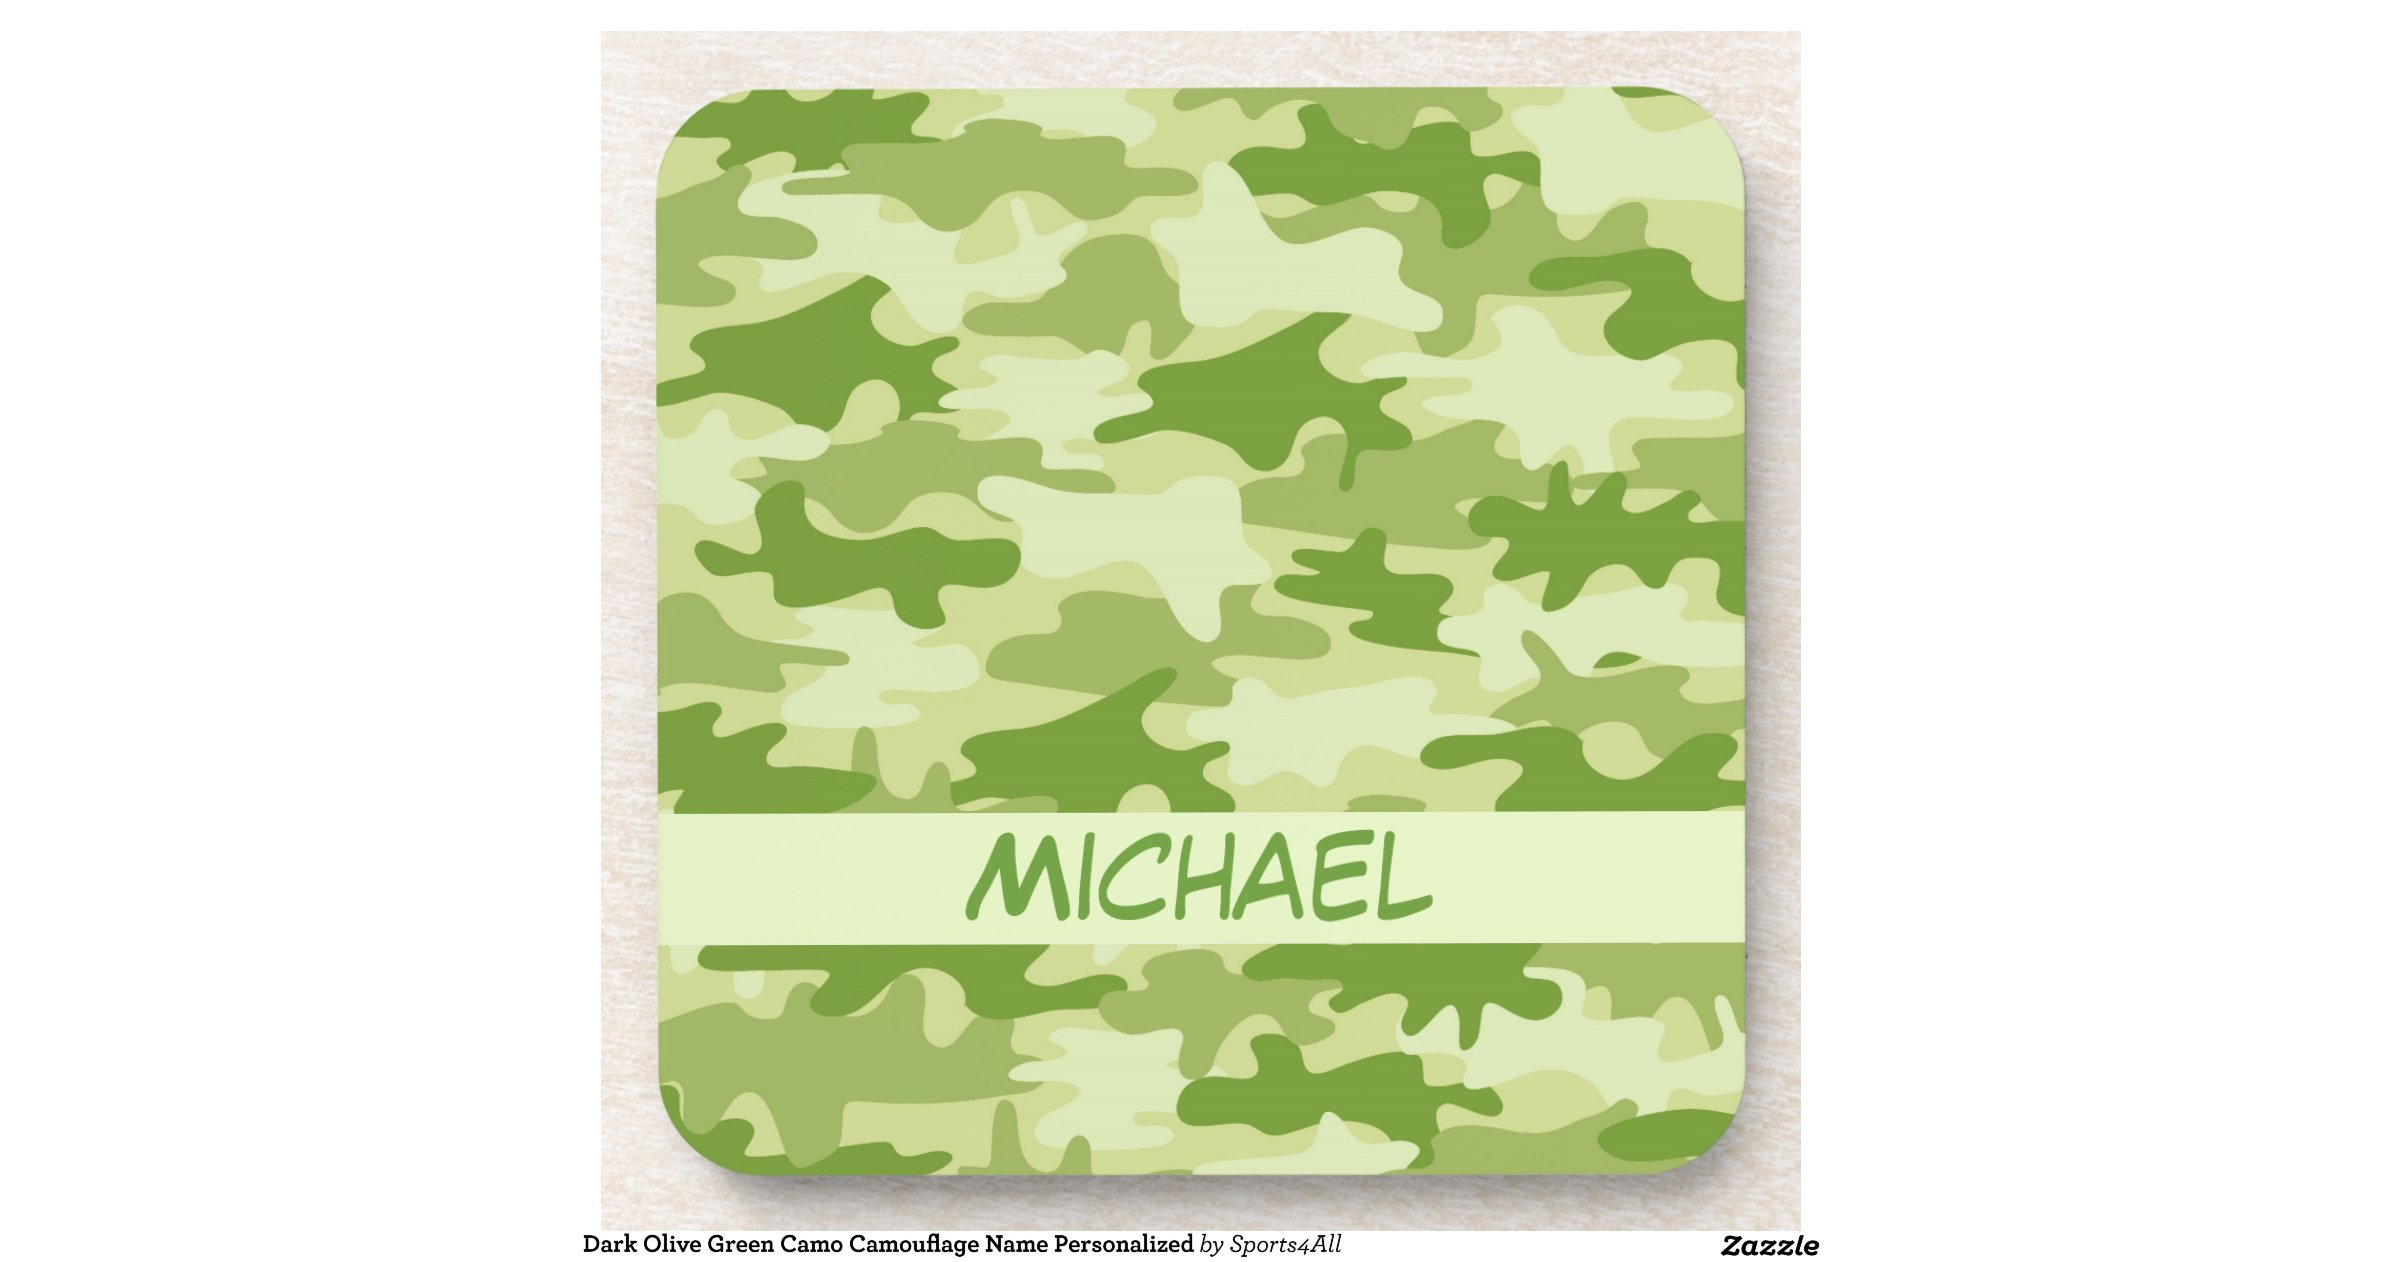 Dark Olive Green Camo Camouflage Name Personalised ...